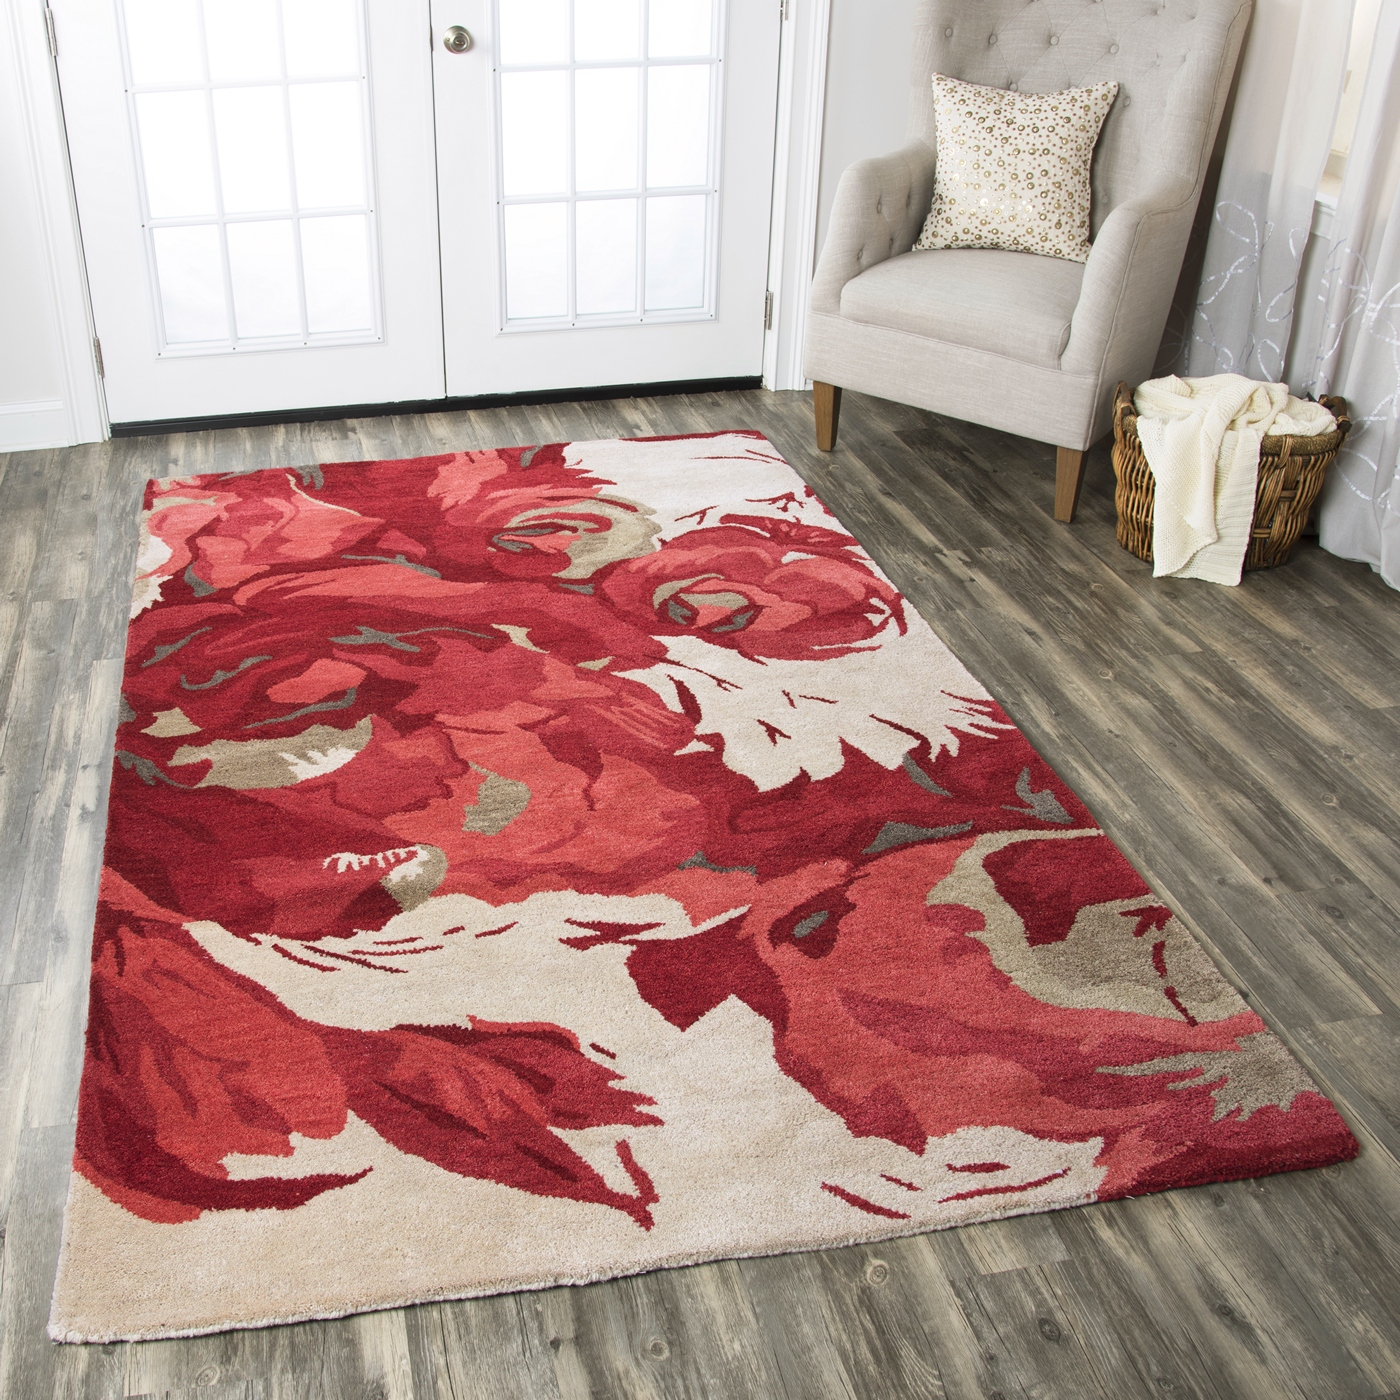 Highland Elegant Rose Wool Area Rug In Red Amp Ivory 9 X 12